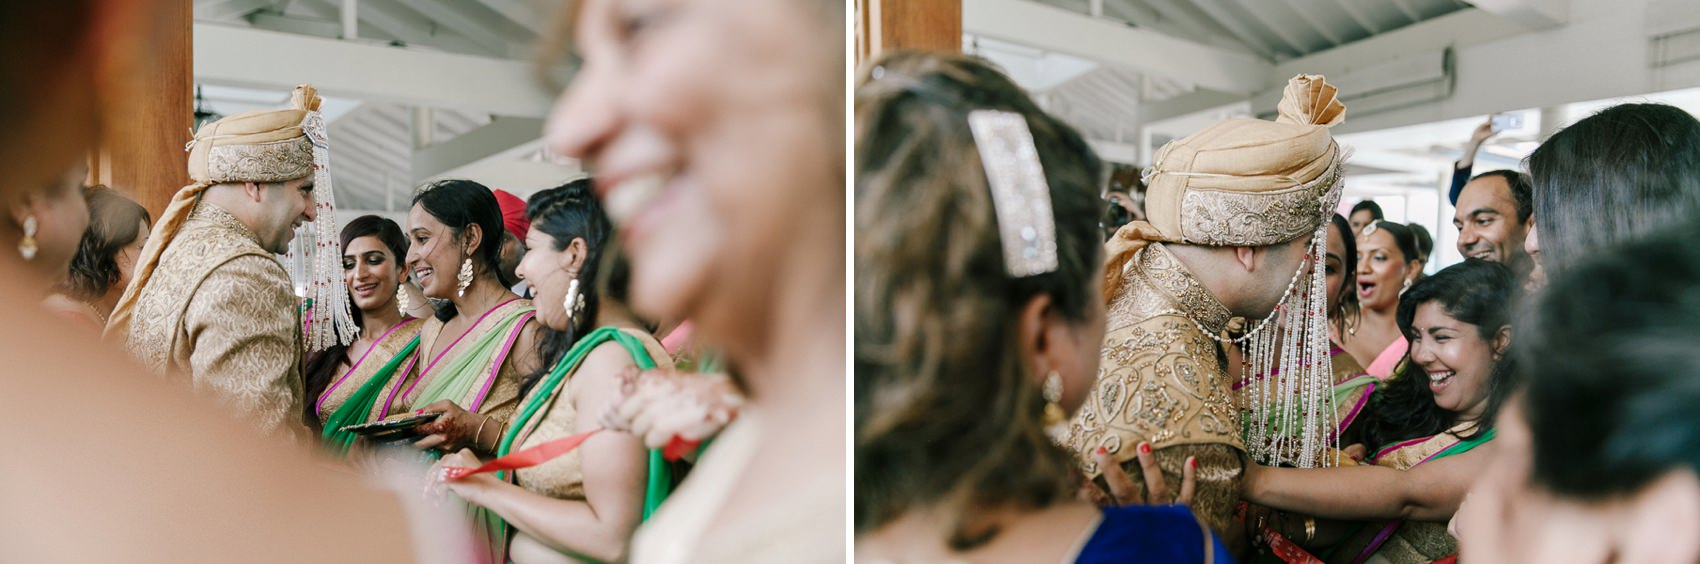 Indian-Wedding-Photography-Maala-Rohan_0190